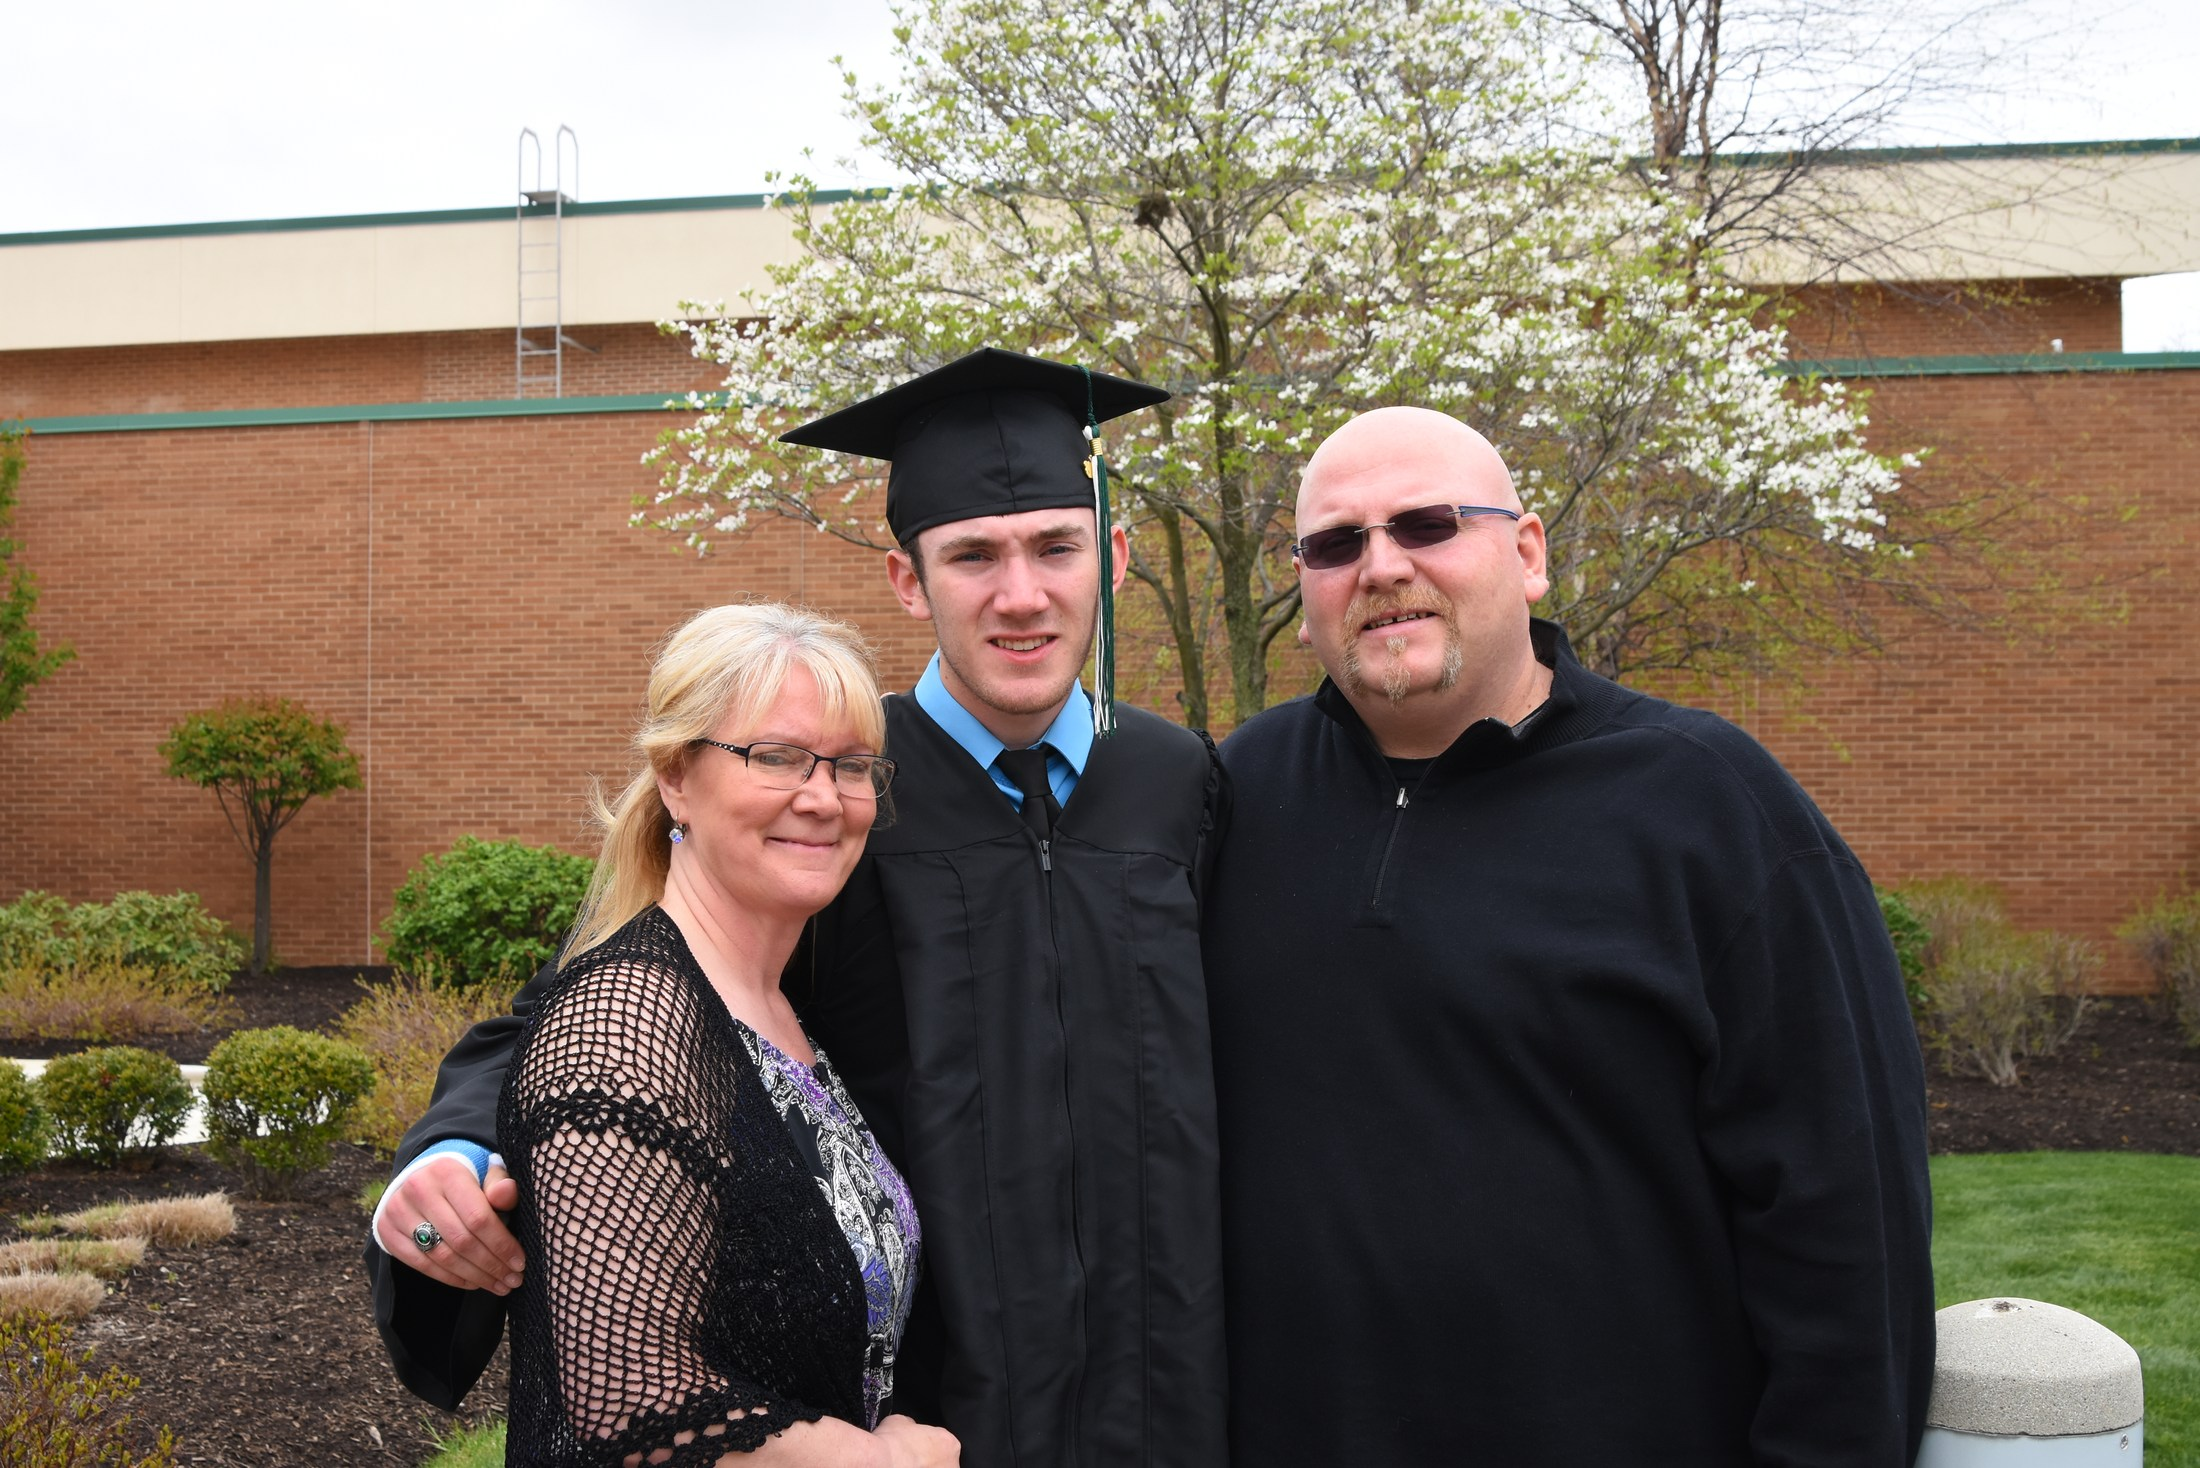 Picture of Family at Commencement